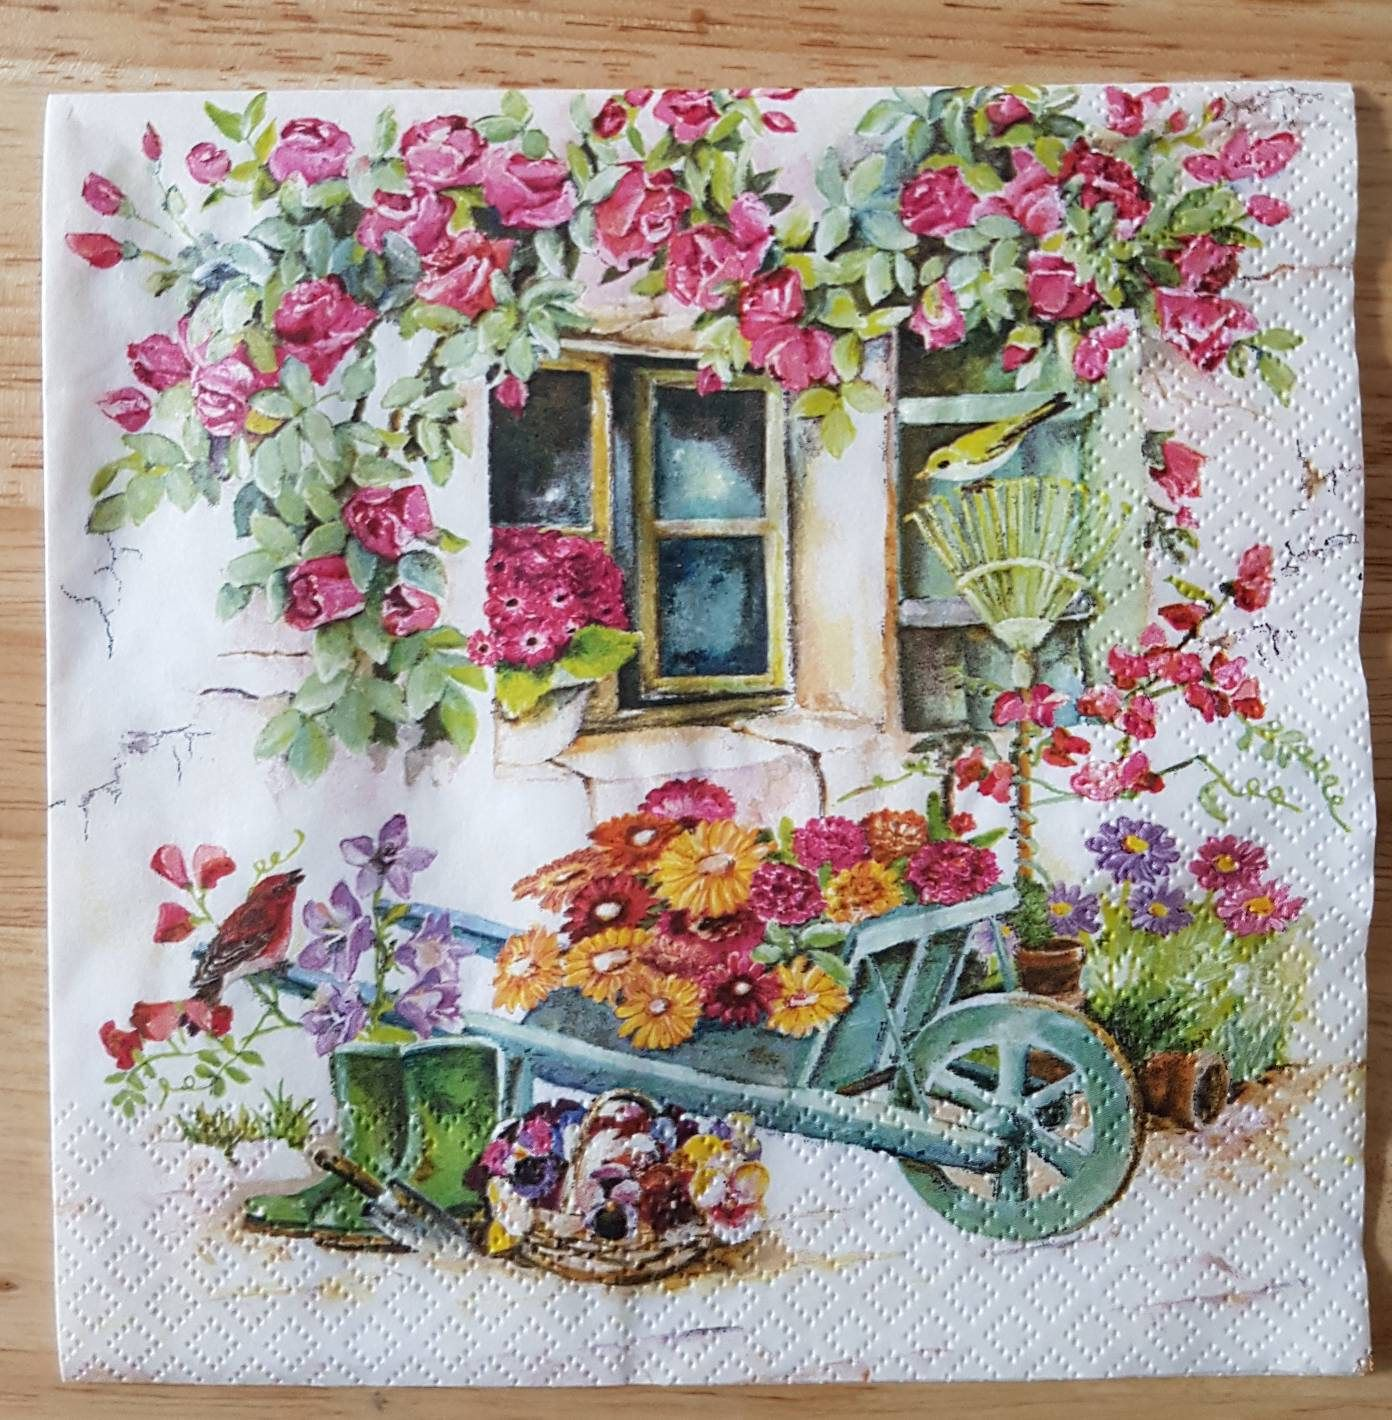 Paper Napkins For Decoupage Set of 4 Backyard Garden Square Paper Lunch Napkins Decoupage Crafts Collage Scrapbooking #112 #papernapkins